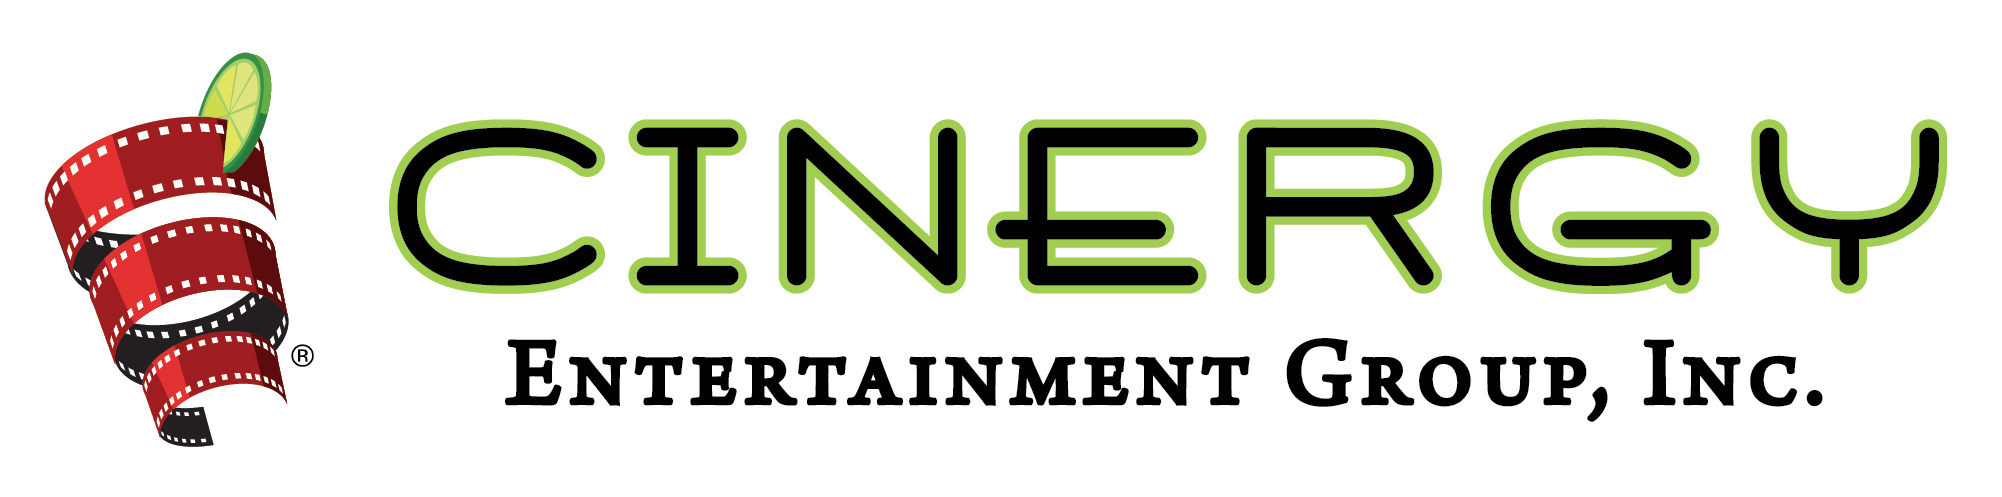 Cinergy Entertainment Group, Inc. (PRNewsFoto/Cinergy Entertainment Group Inc.) (PRNewsfoto/Cinergy Entertainment Group, In)